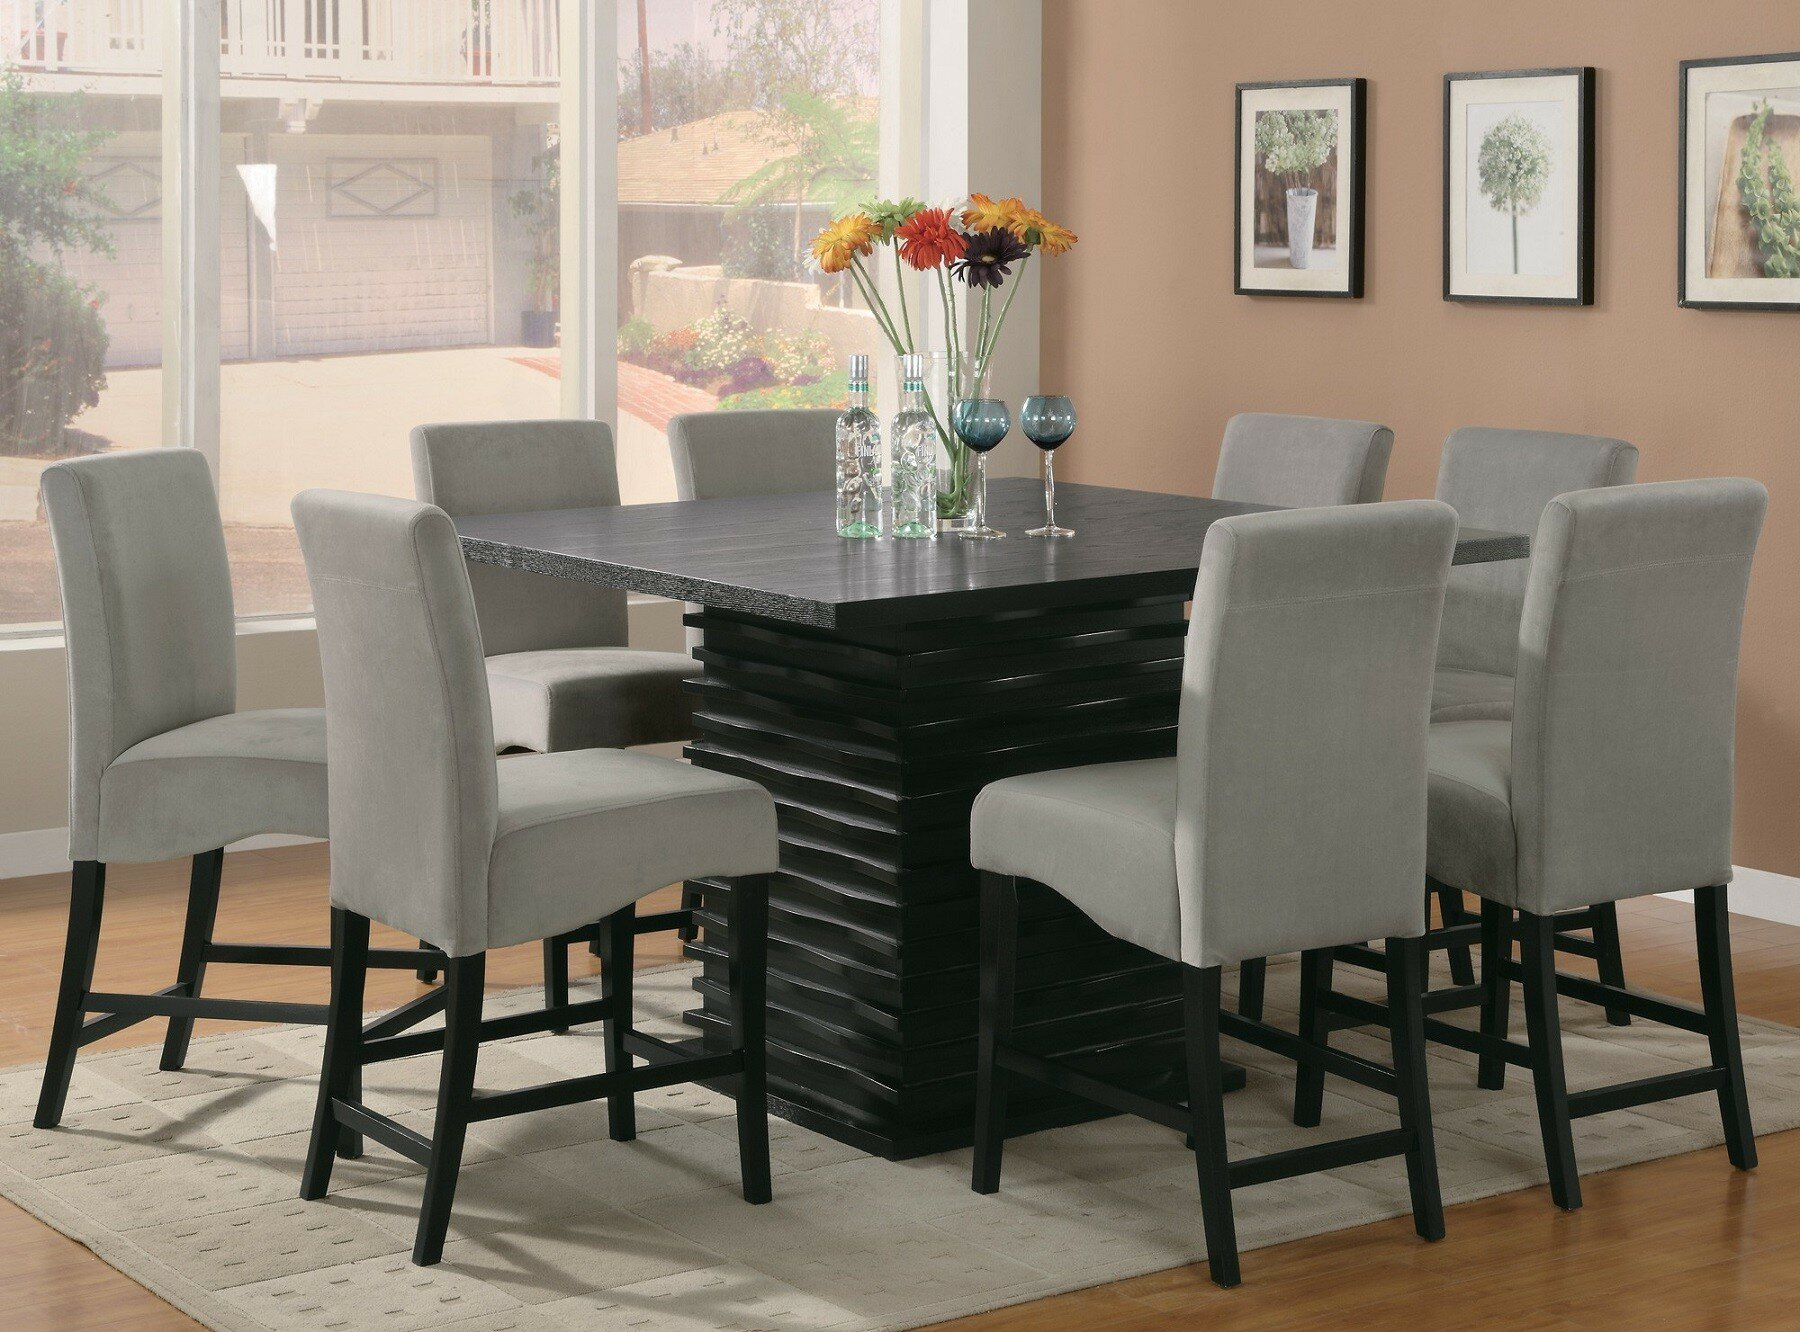 Orren Ellis Annapolis 9 Piece Counter Height Dining Set Reviews